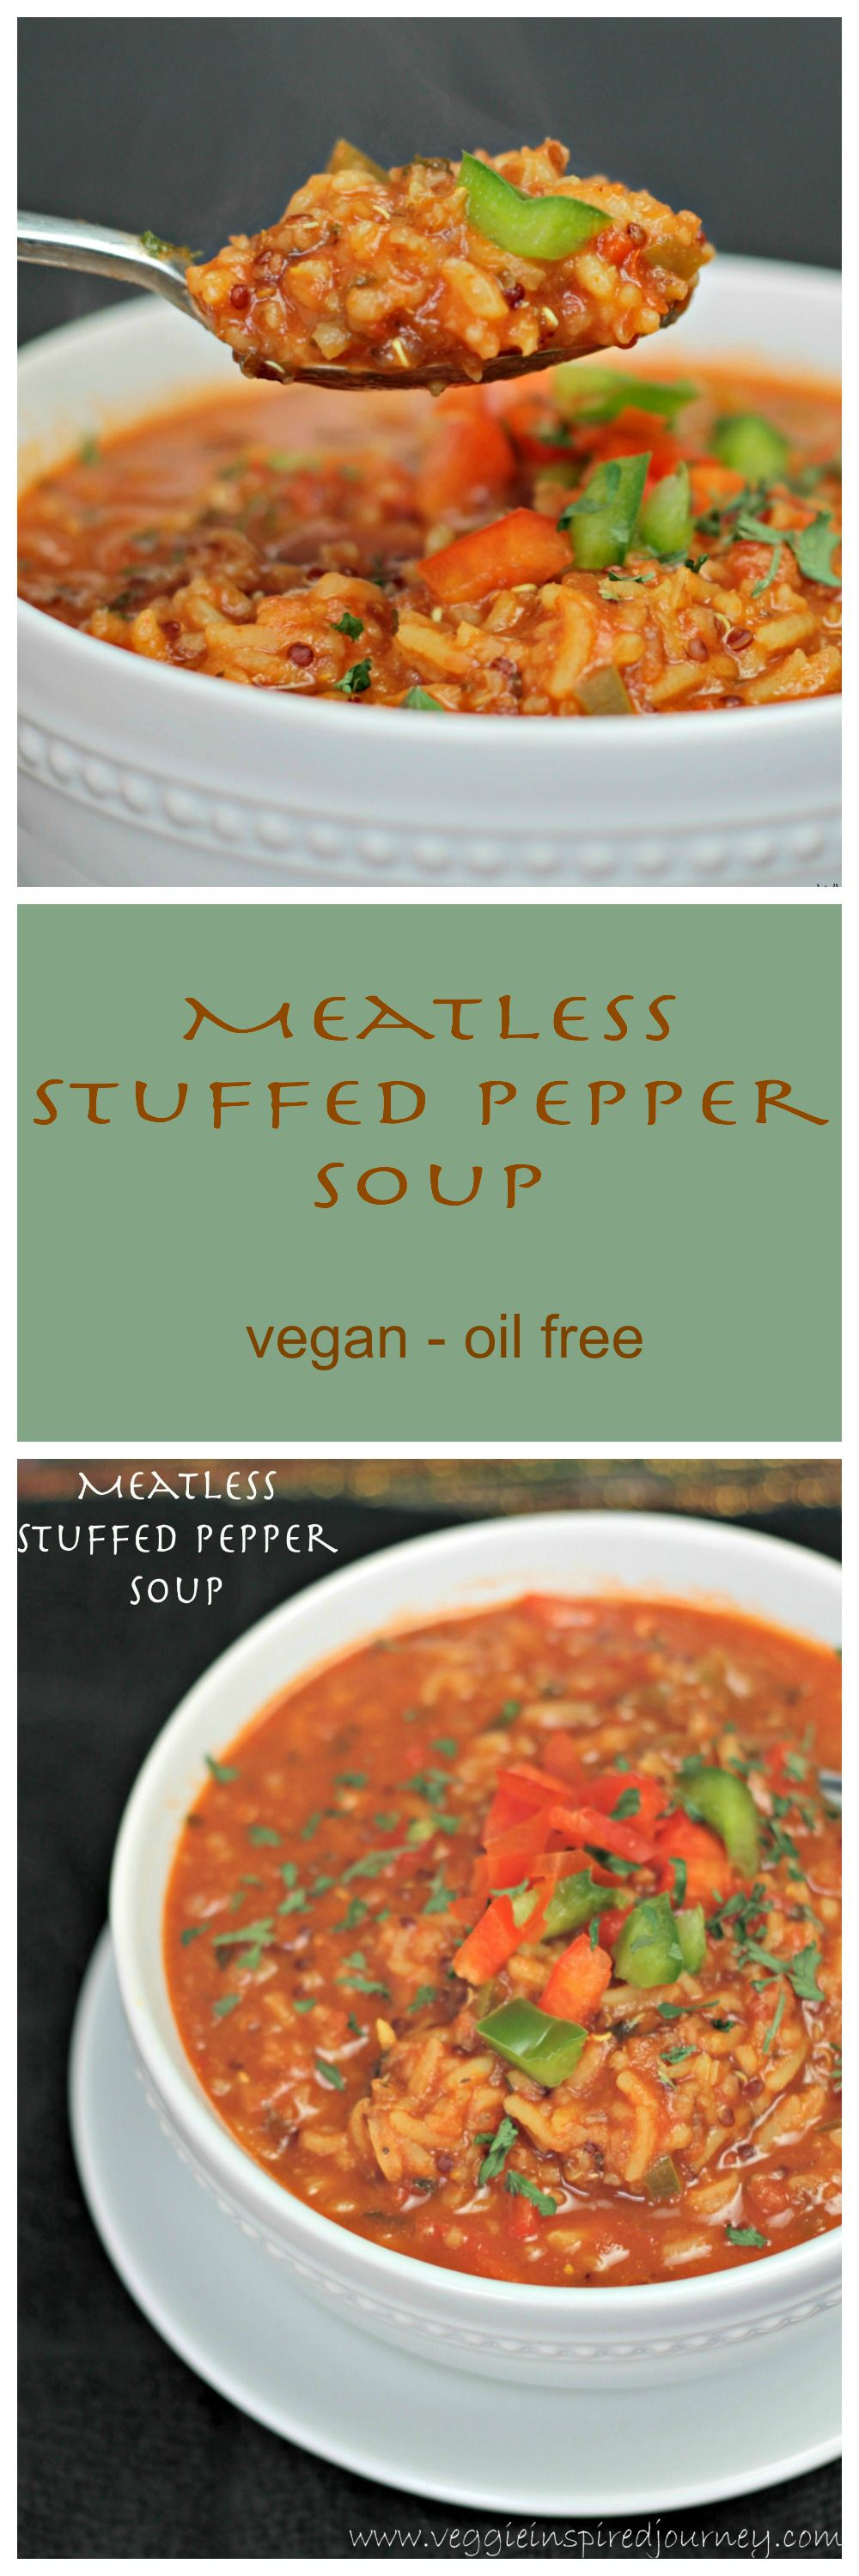 Meatless Stuffed Pepper Soup Recipe Vegetarian Comfort Food Stuffed Peppers Delicious Soup